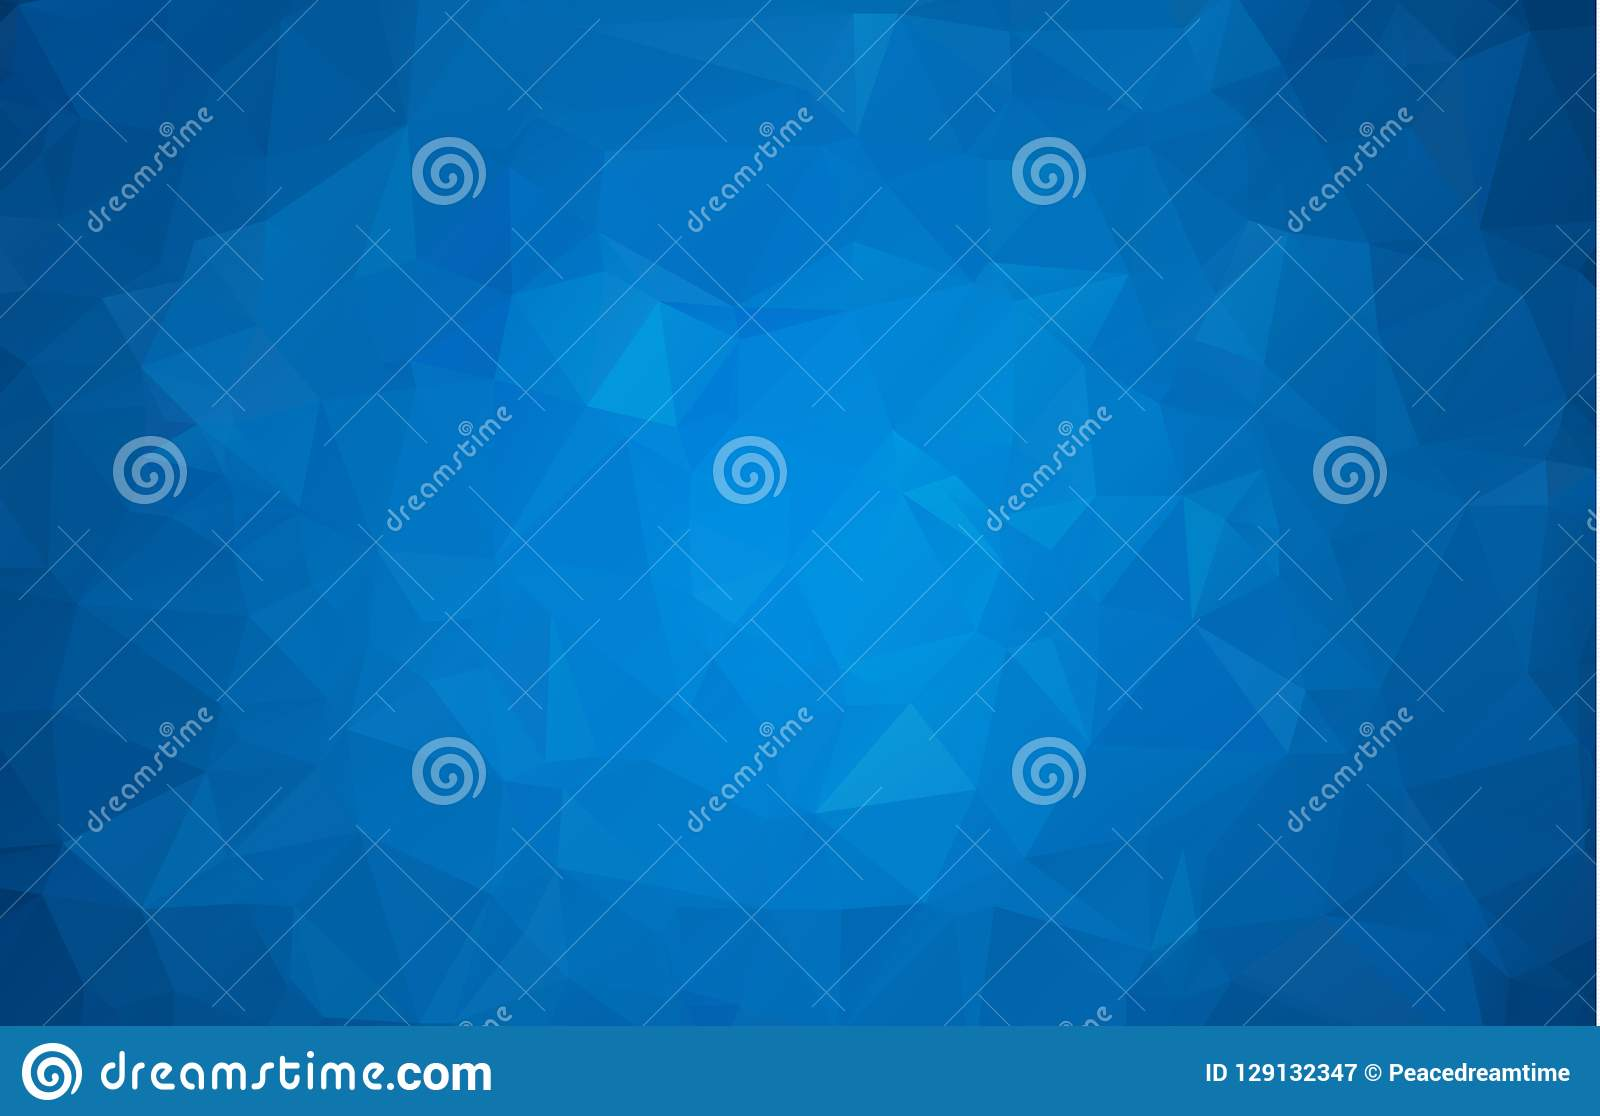 Abstract multicolor dark blue geometric rumpled triangular low poly style gradient illustration graphic background. Vector polygon